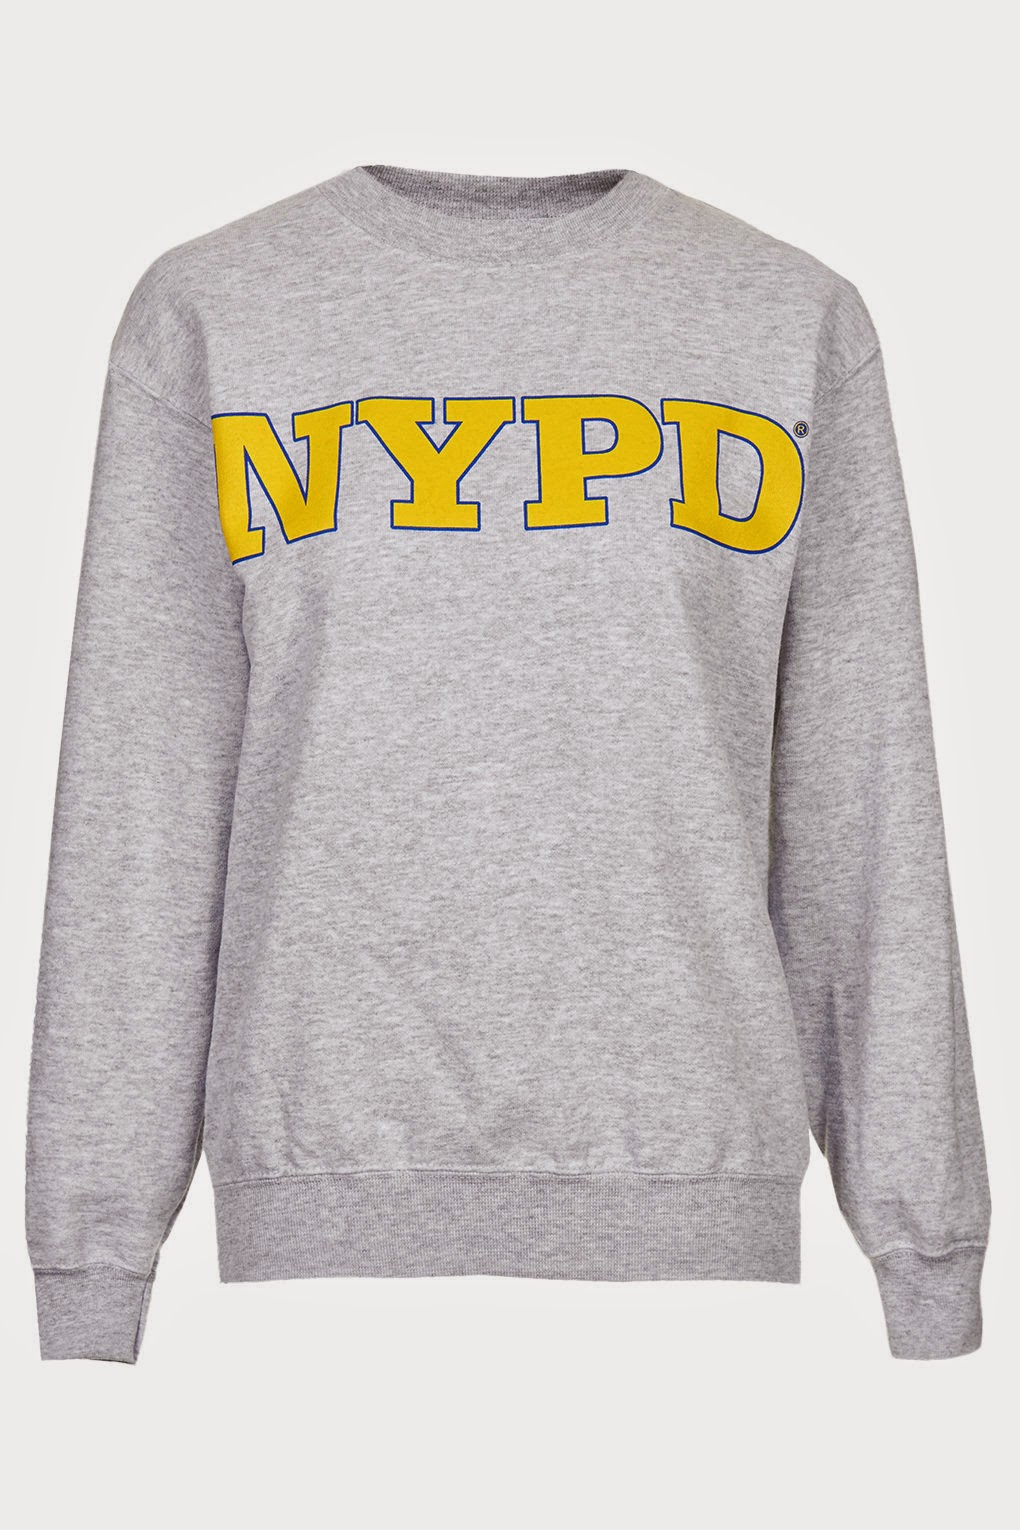 nypd sweater